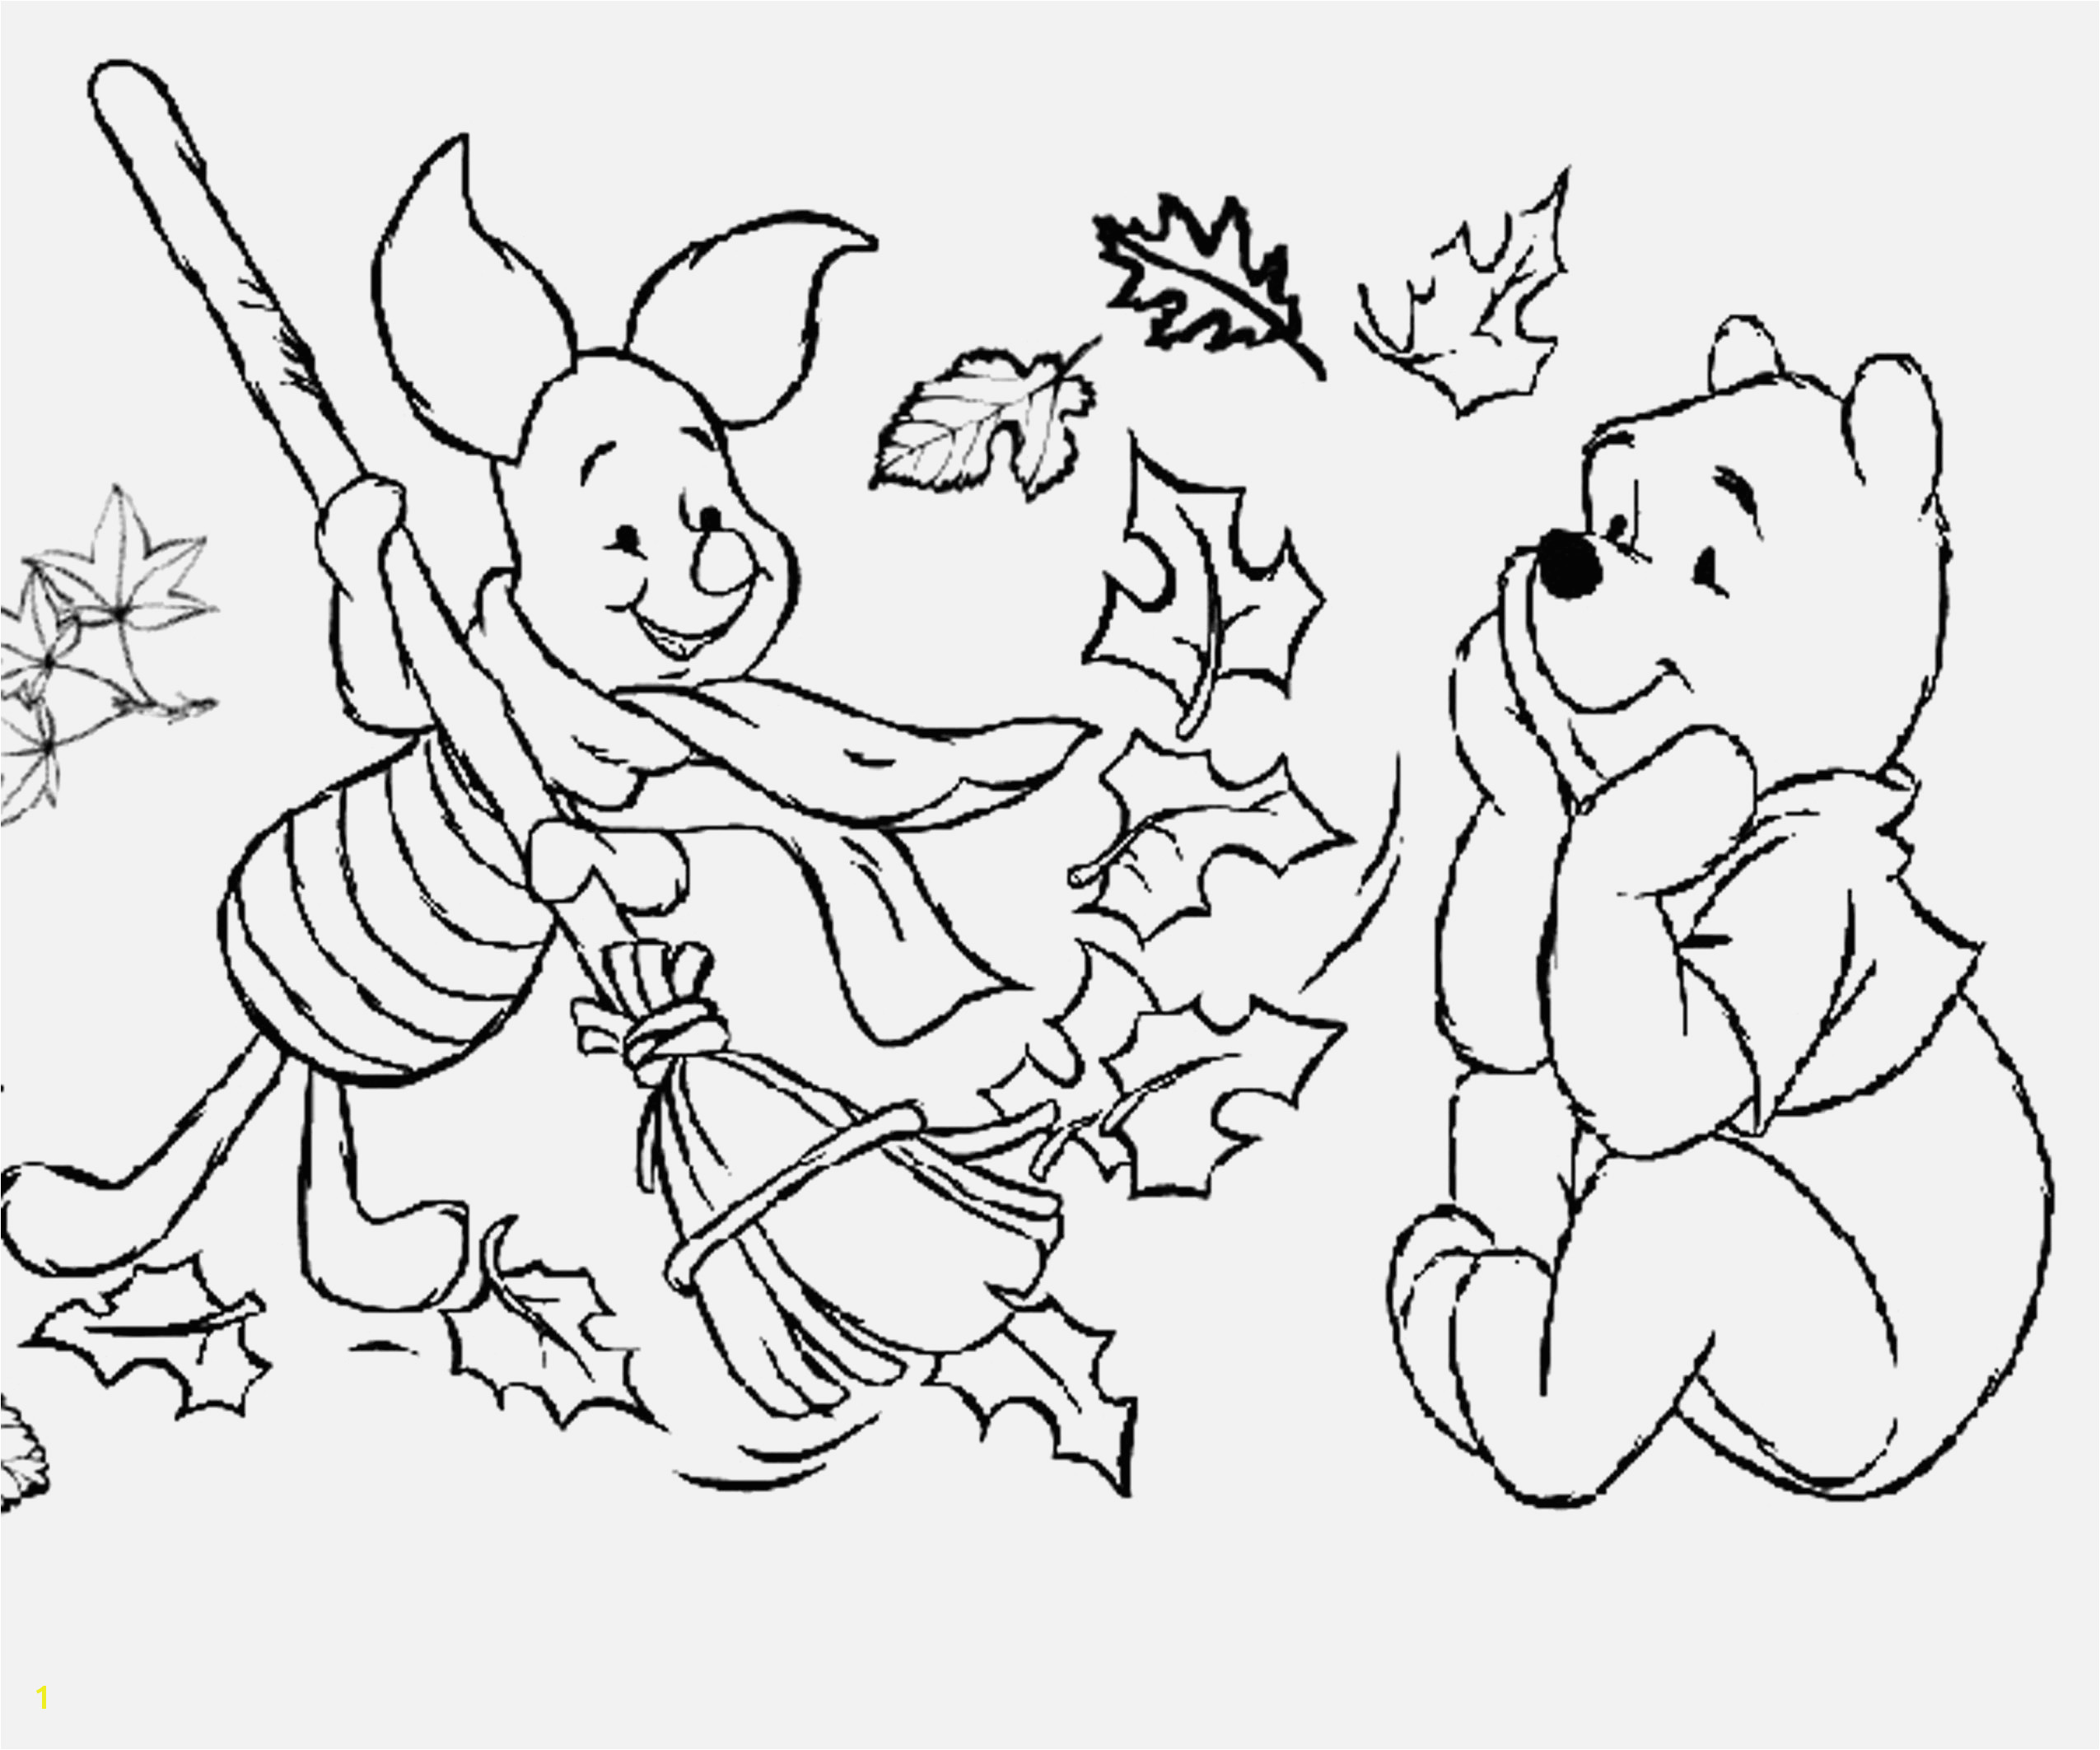 Easy Adult Coloring Pages Free Print Simple Adult Coloring Pages Elegant Best Coloring Page Adult Od